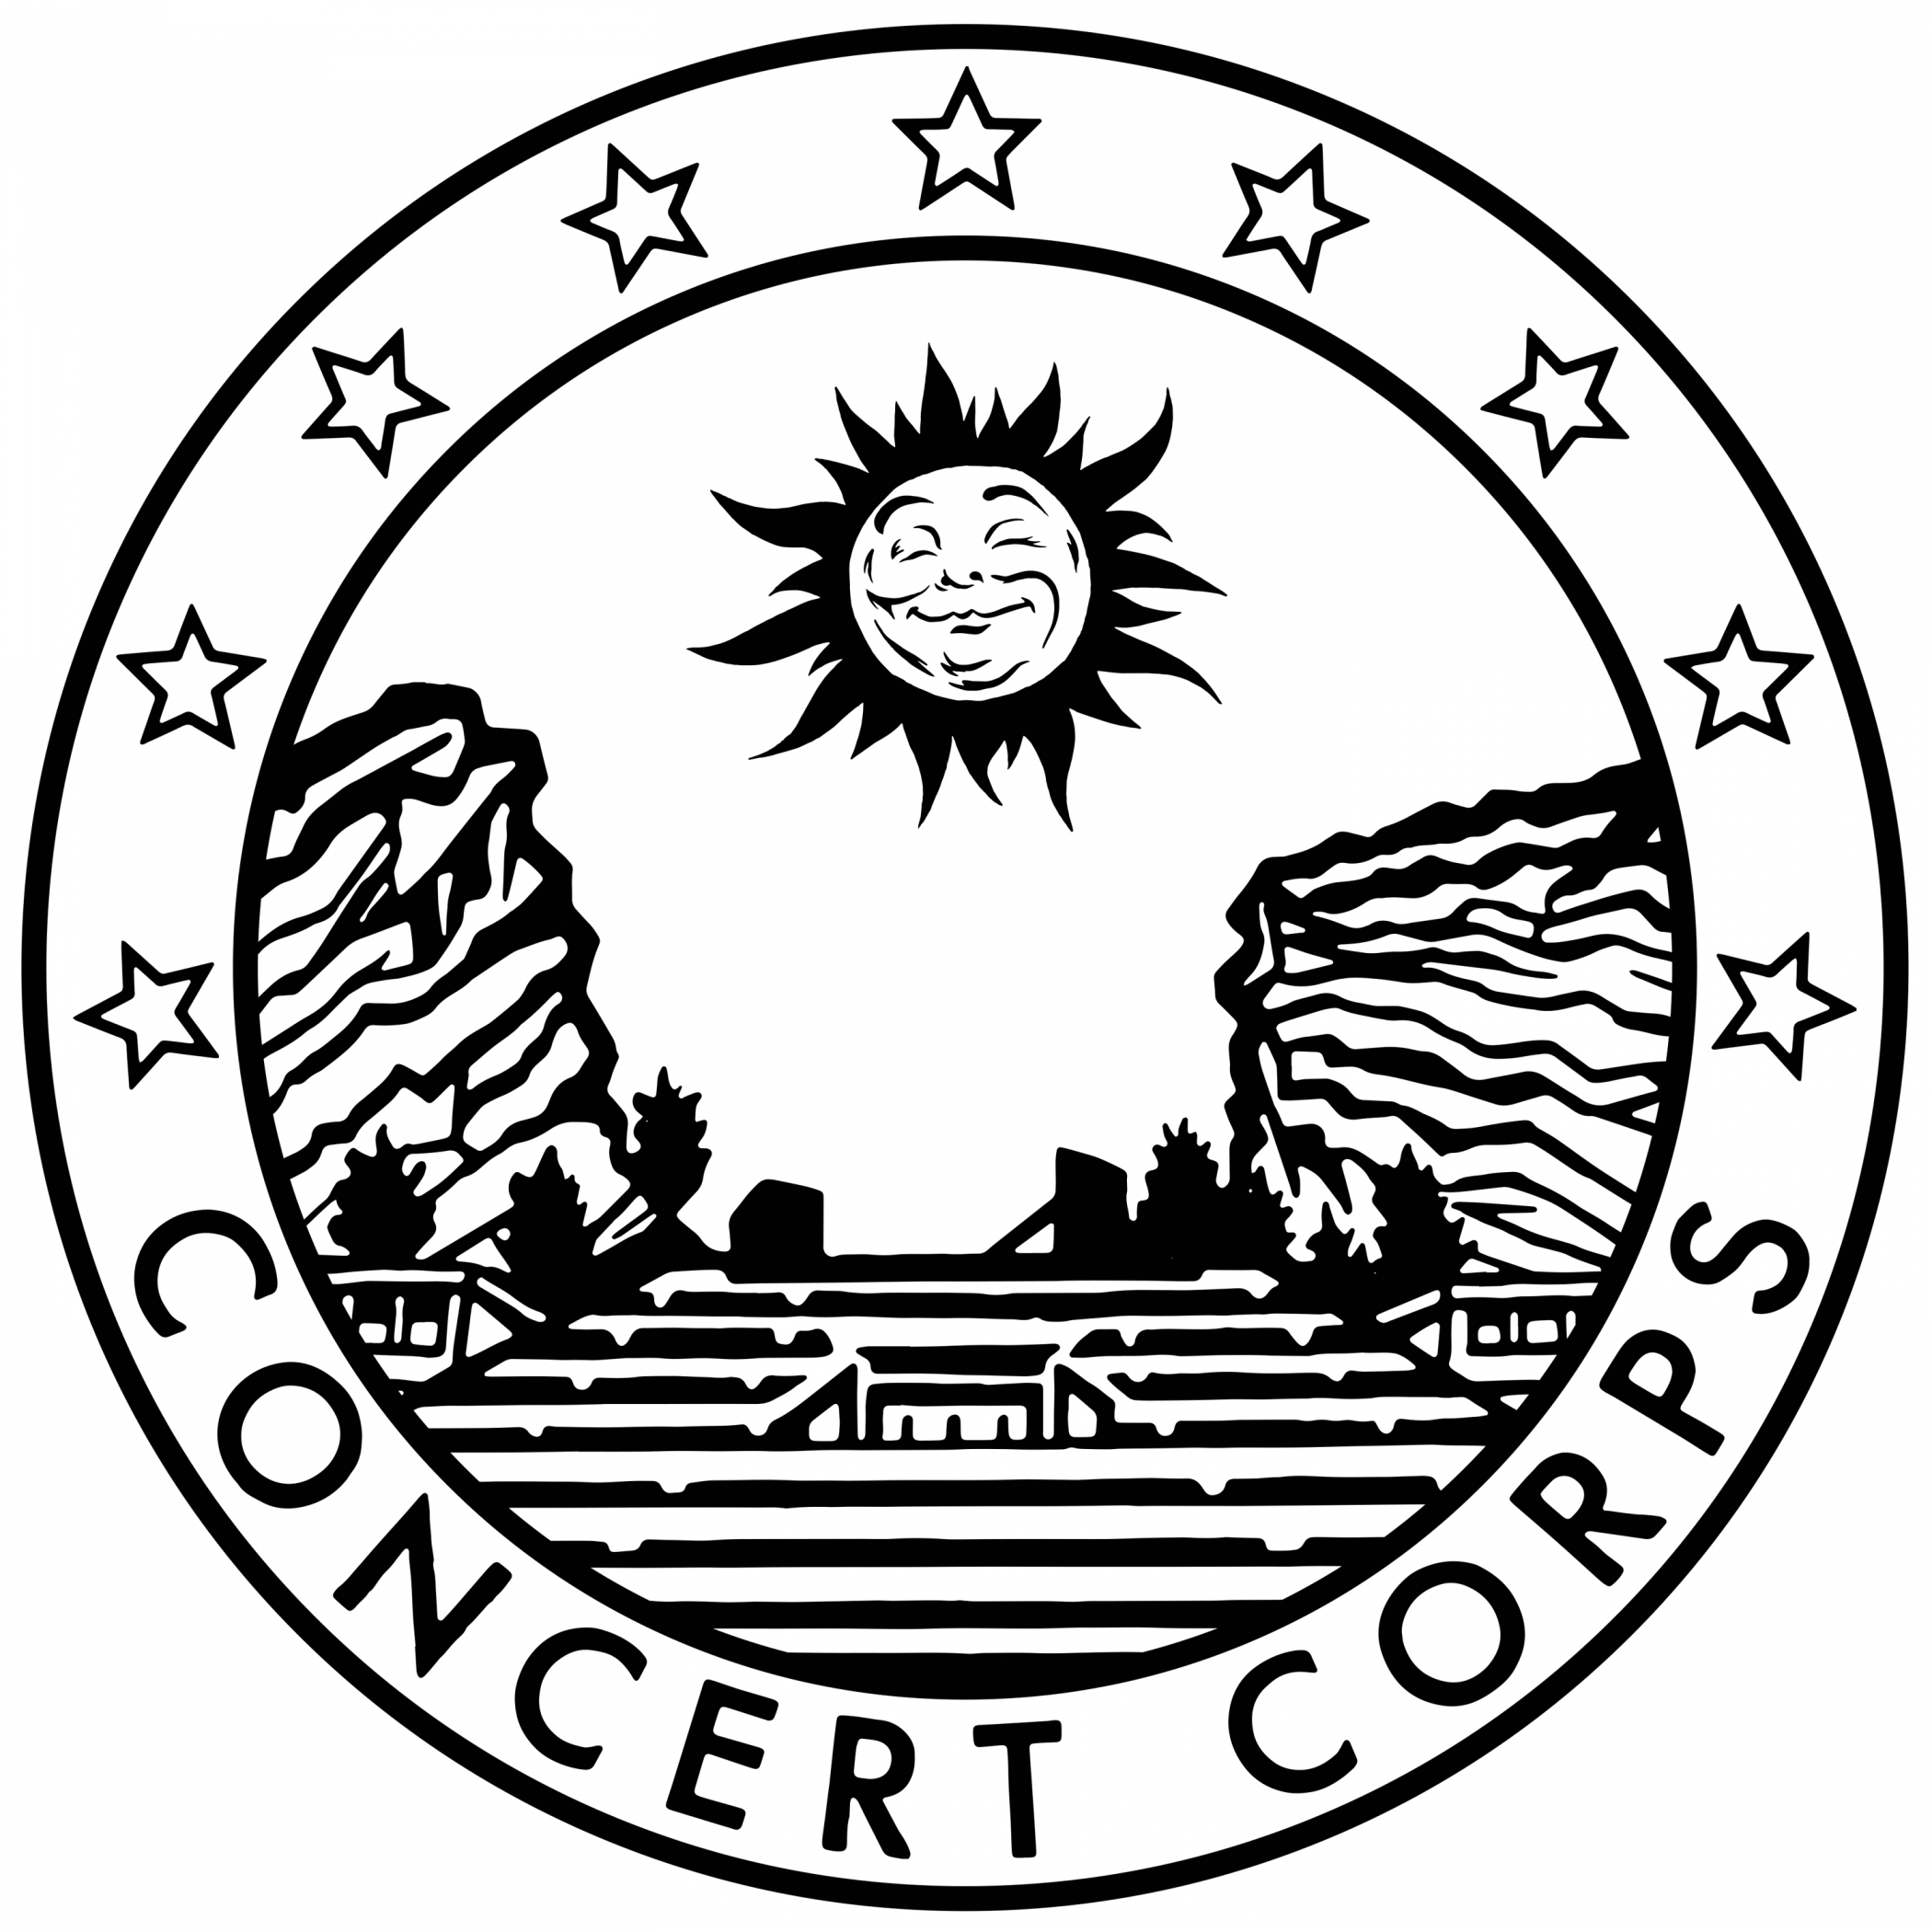 Concert Corps Logo